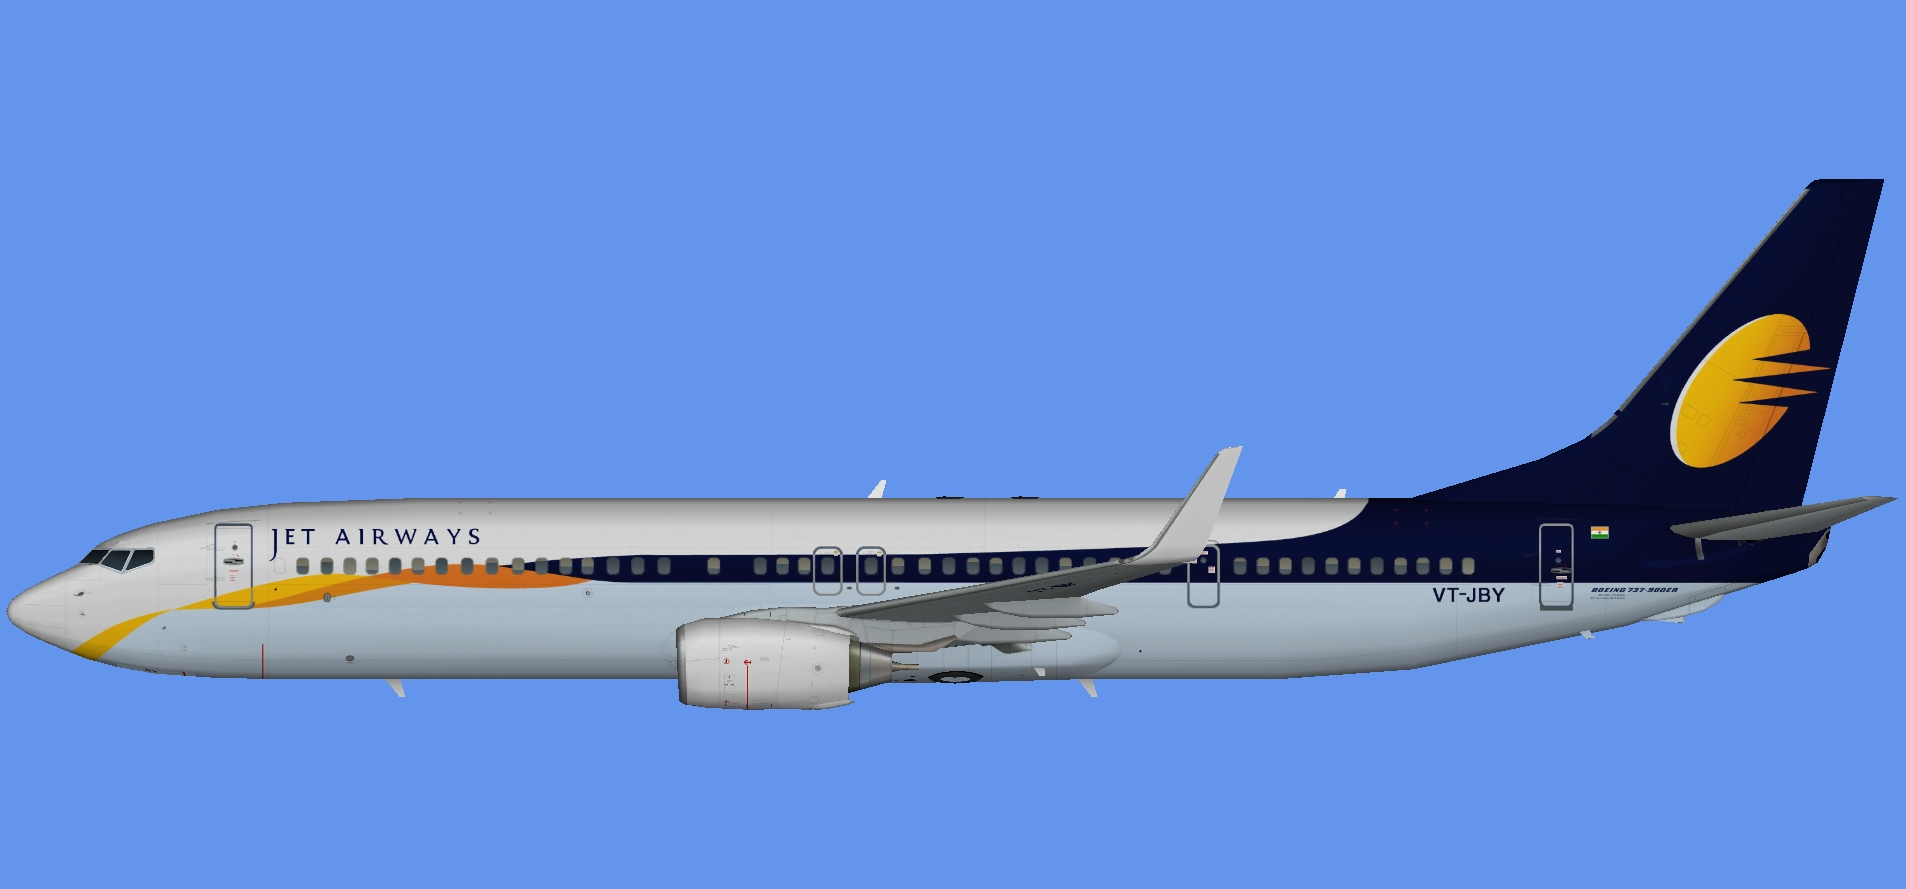 Jet Airways Boeing 737-900ER